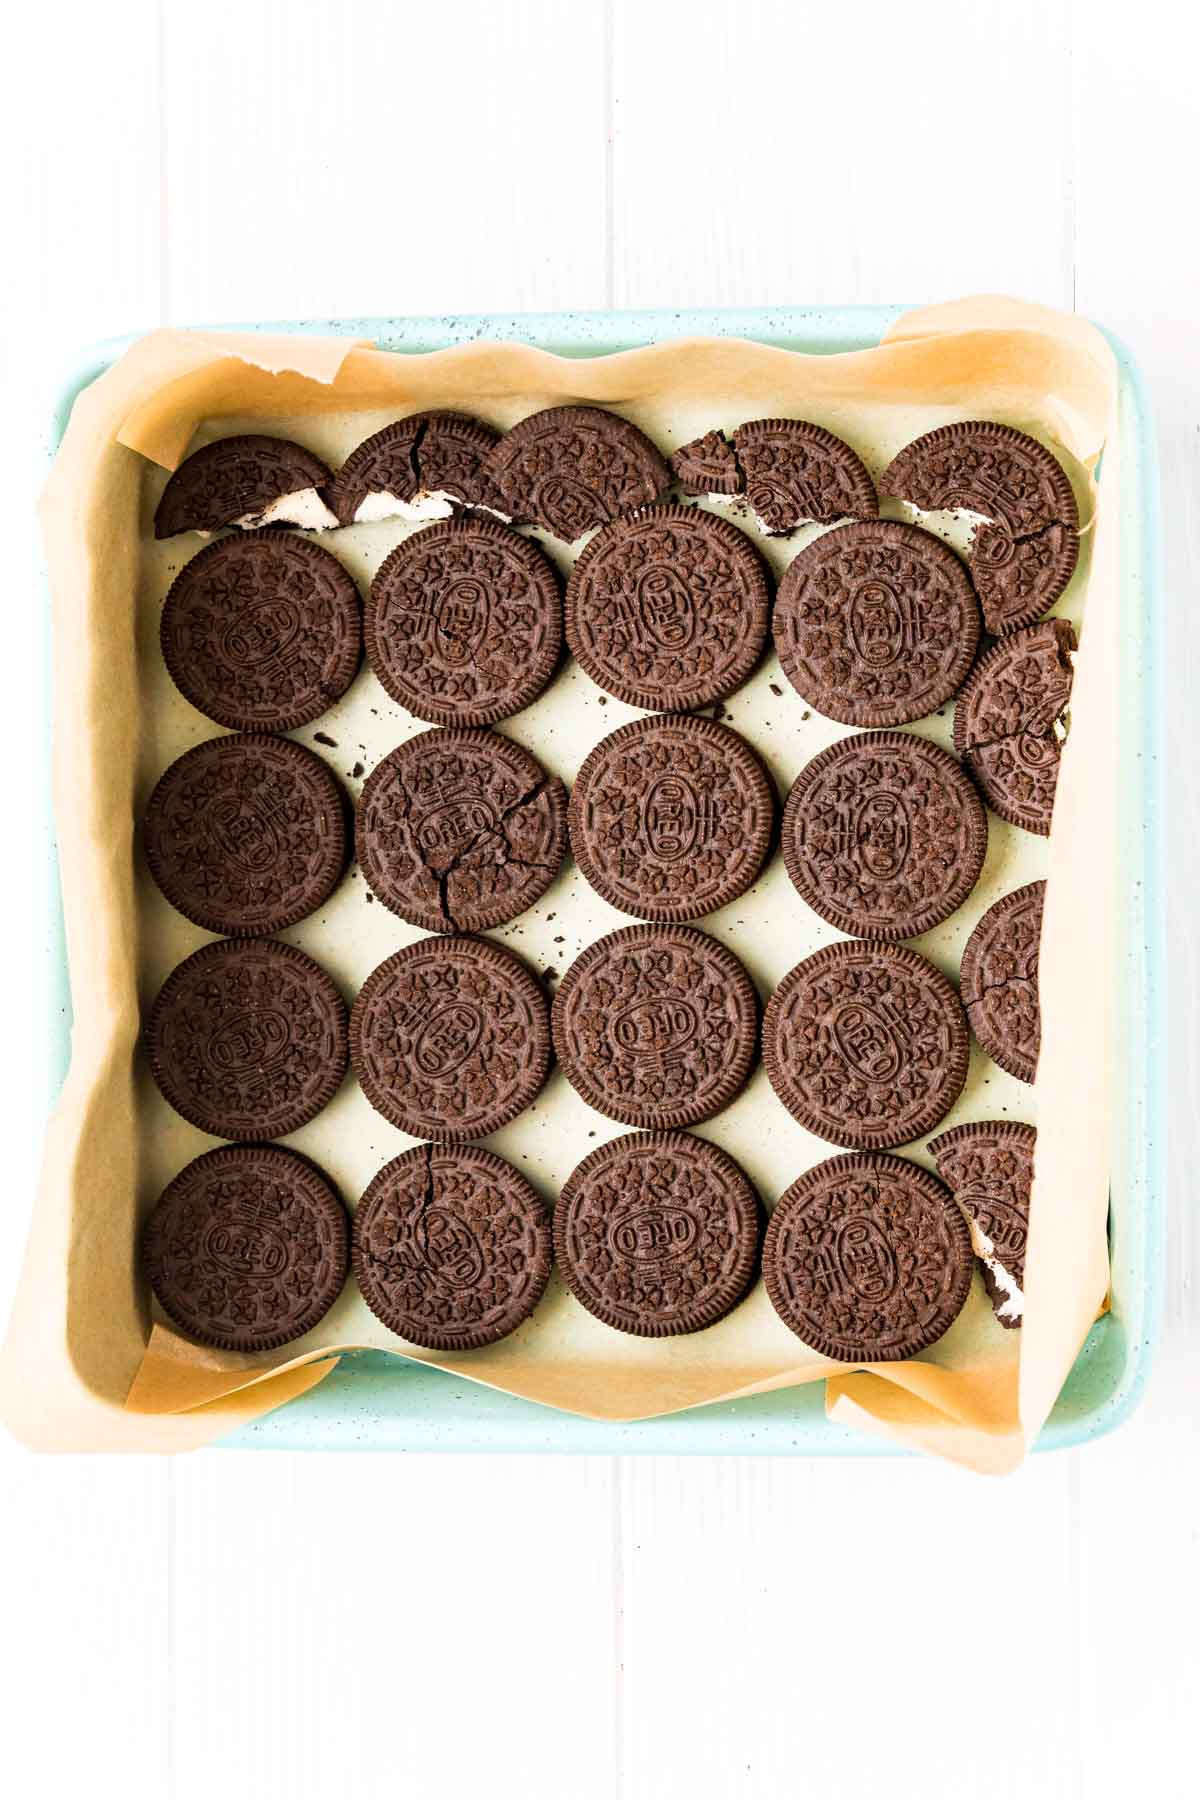 line of Oreos on the bottom of a square pan